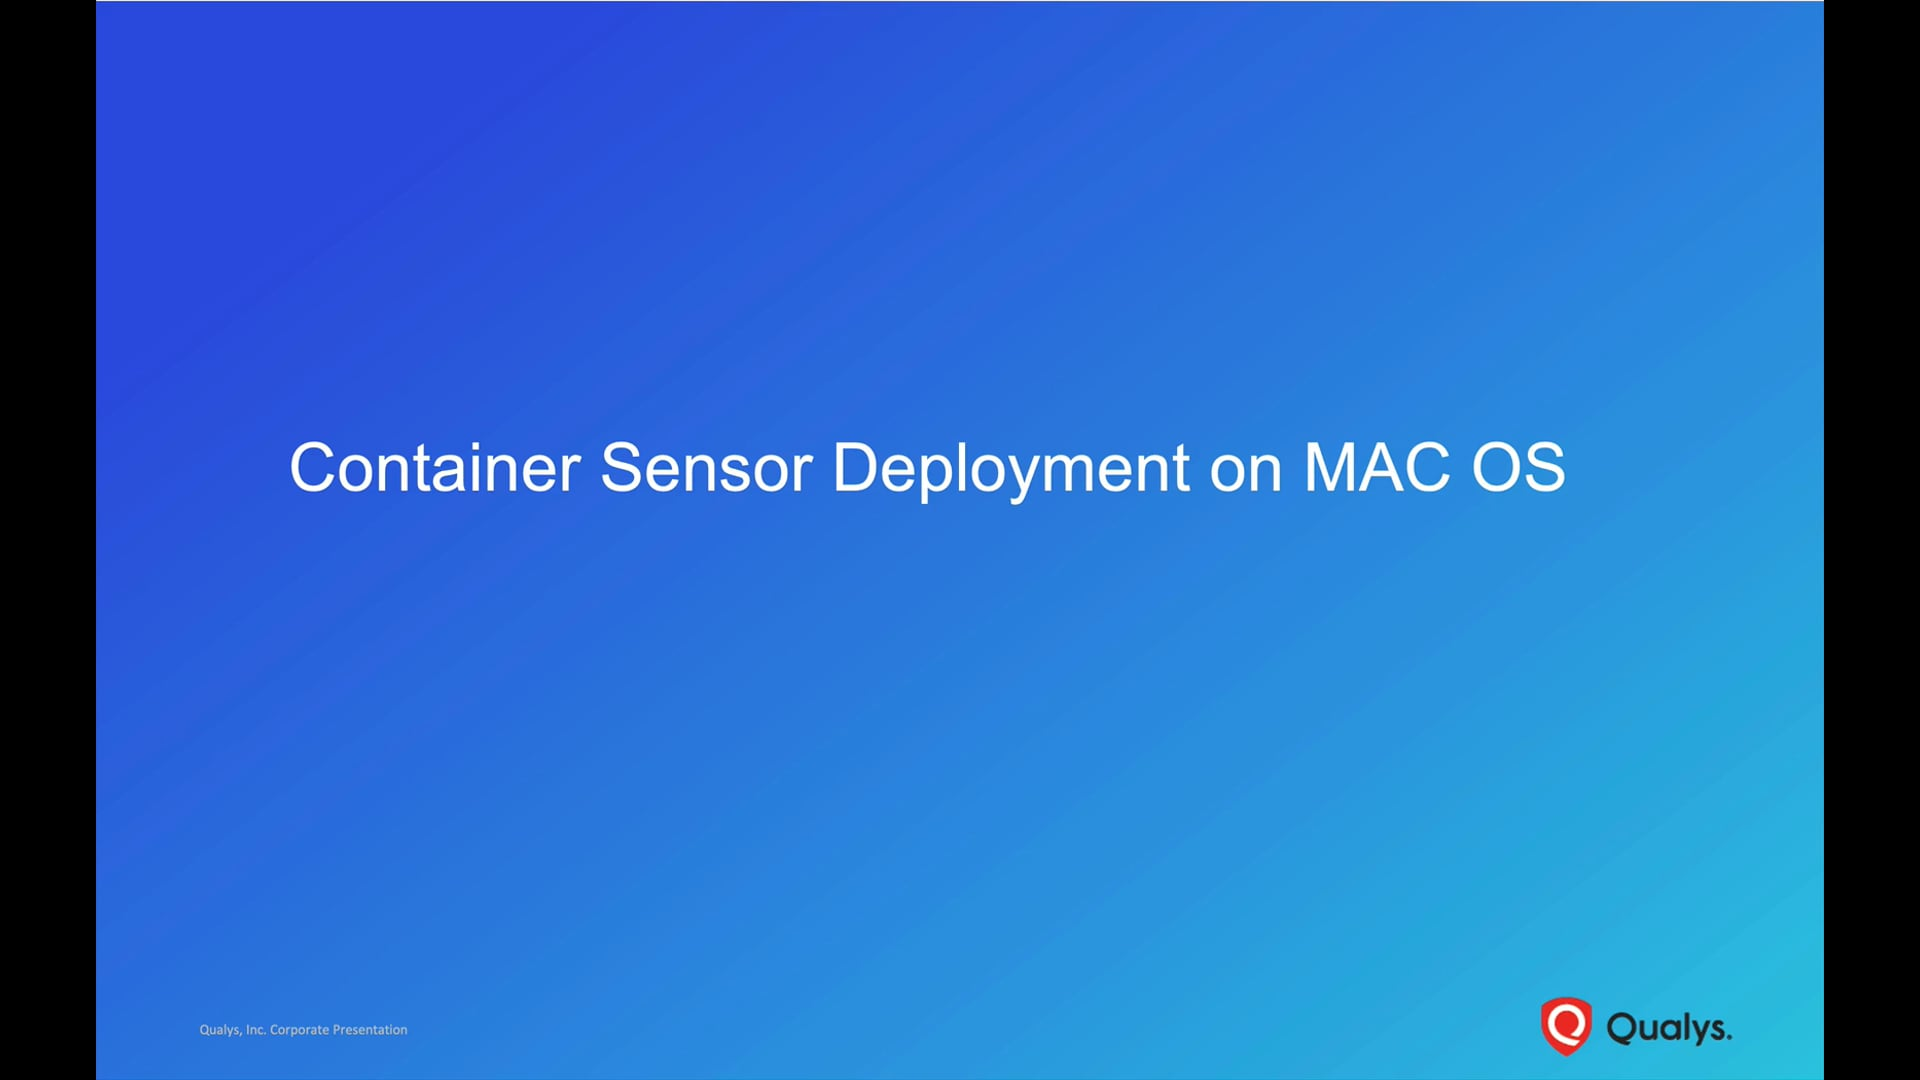 Container Sensor Deployment on MAC OS